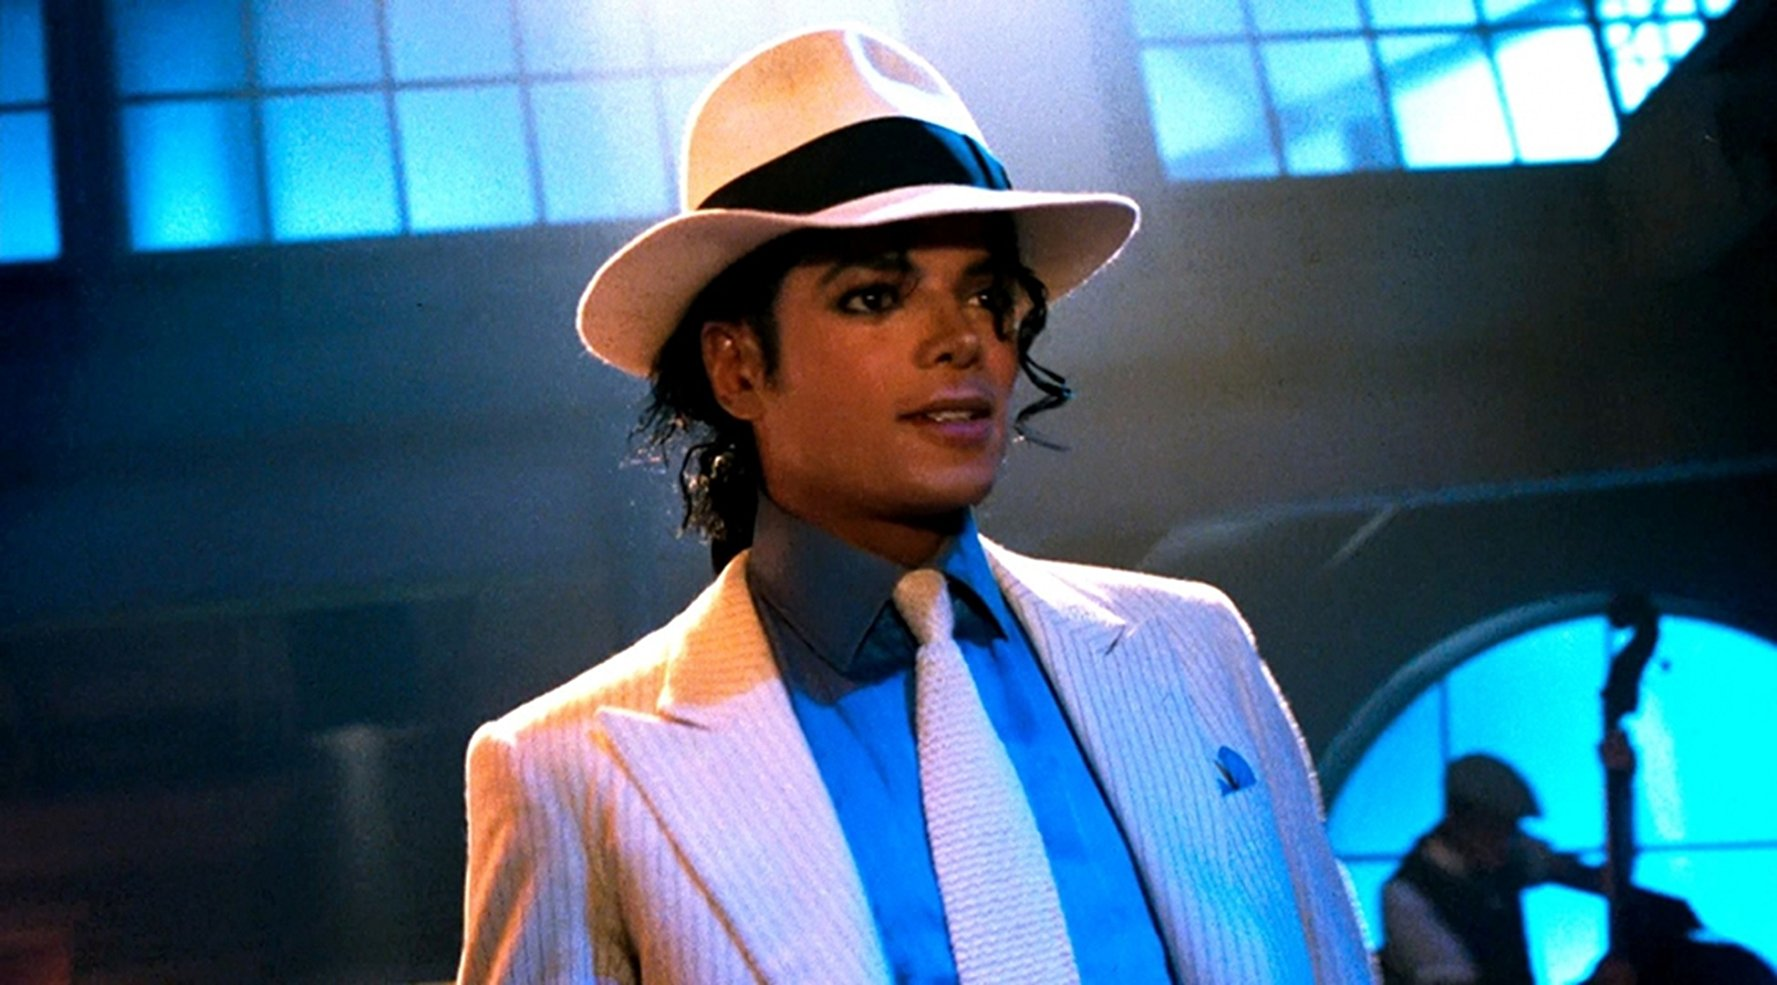 Michael jackson appears in olamide 39 s woske masha 39 s view - Michael jackson smooth criminal pictures ...